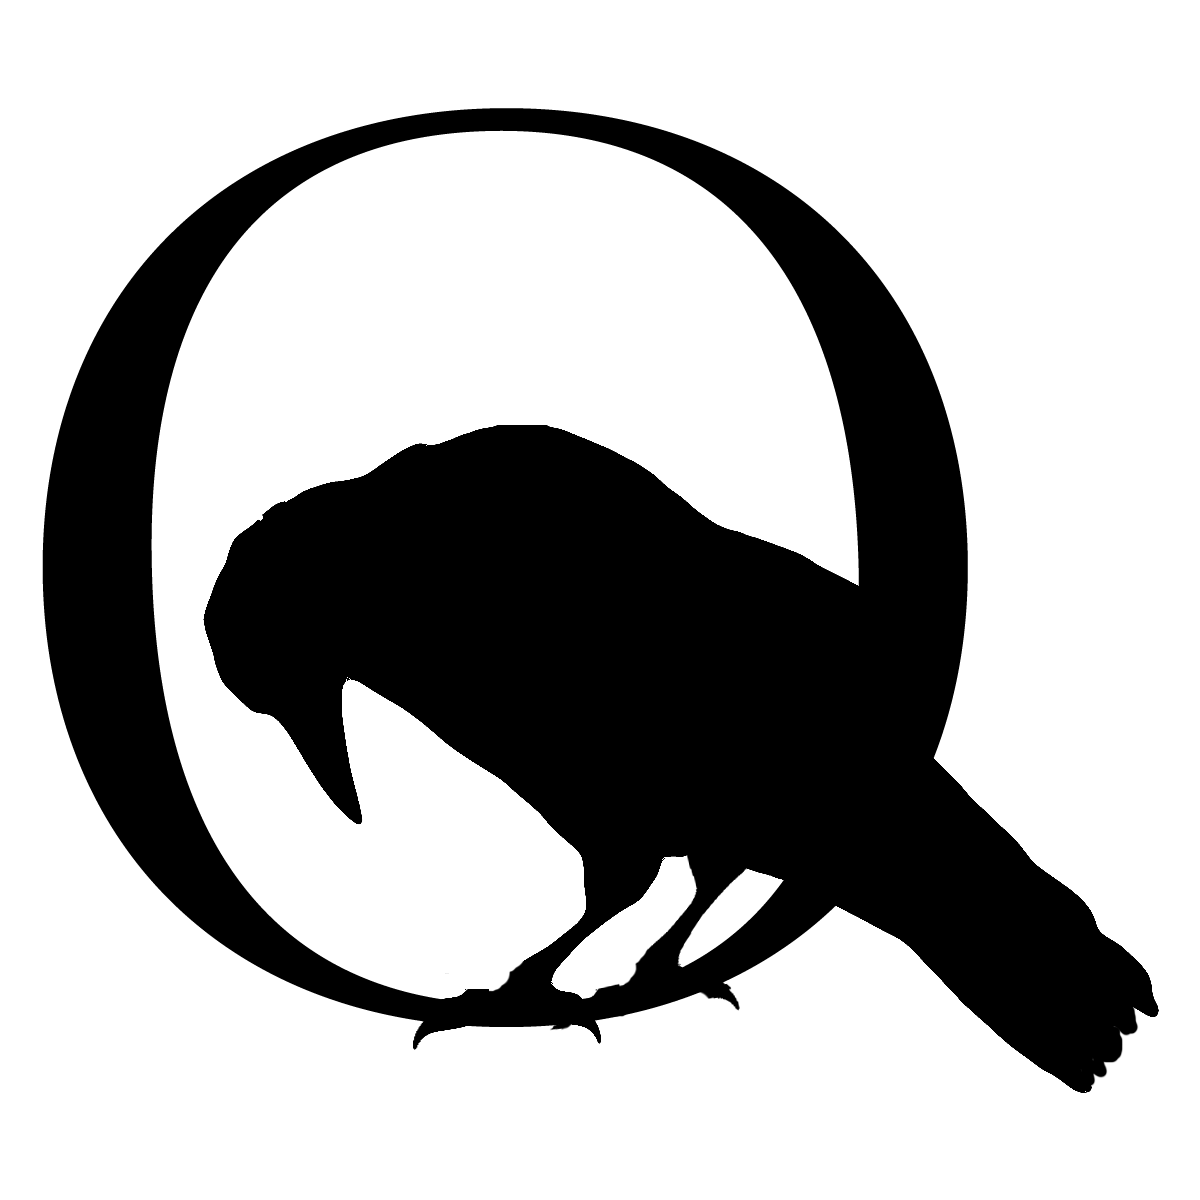 The hooded crow logo. Poetry clipart anthology